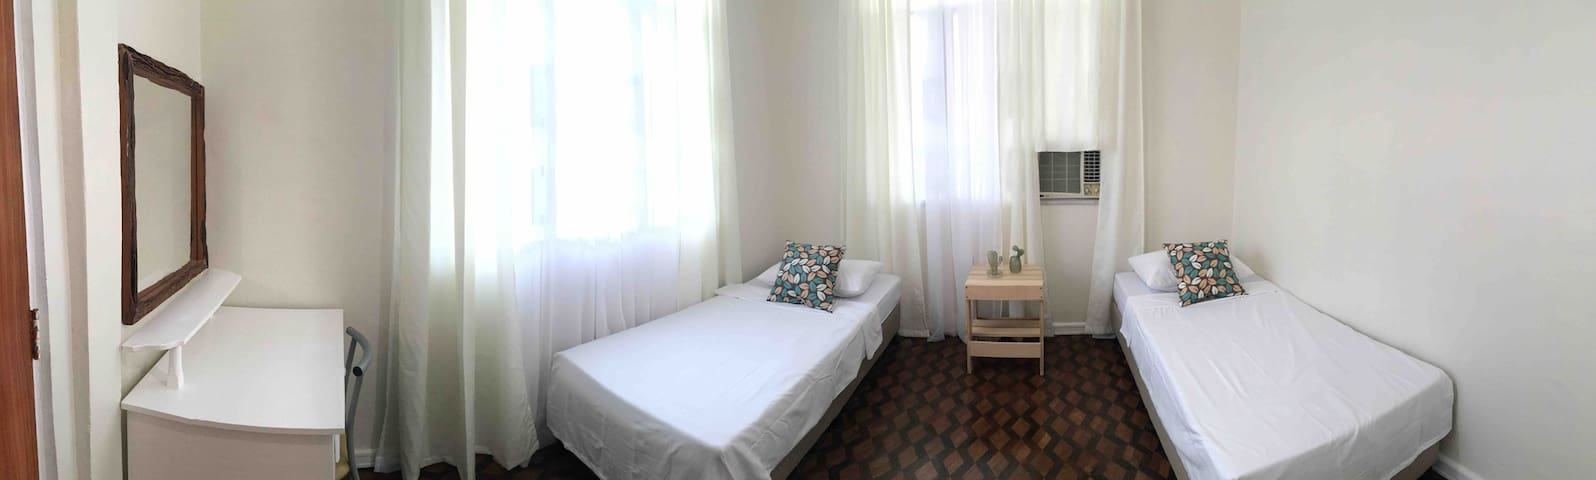 E Komo Mai Vacation Home (6-8pax)